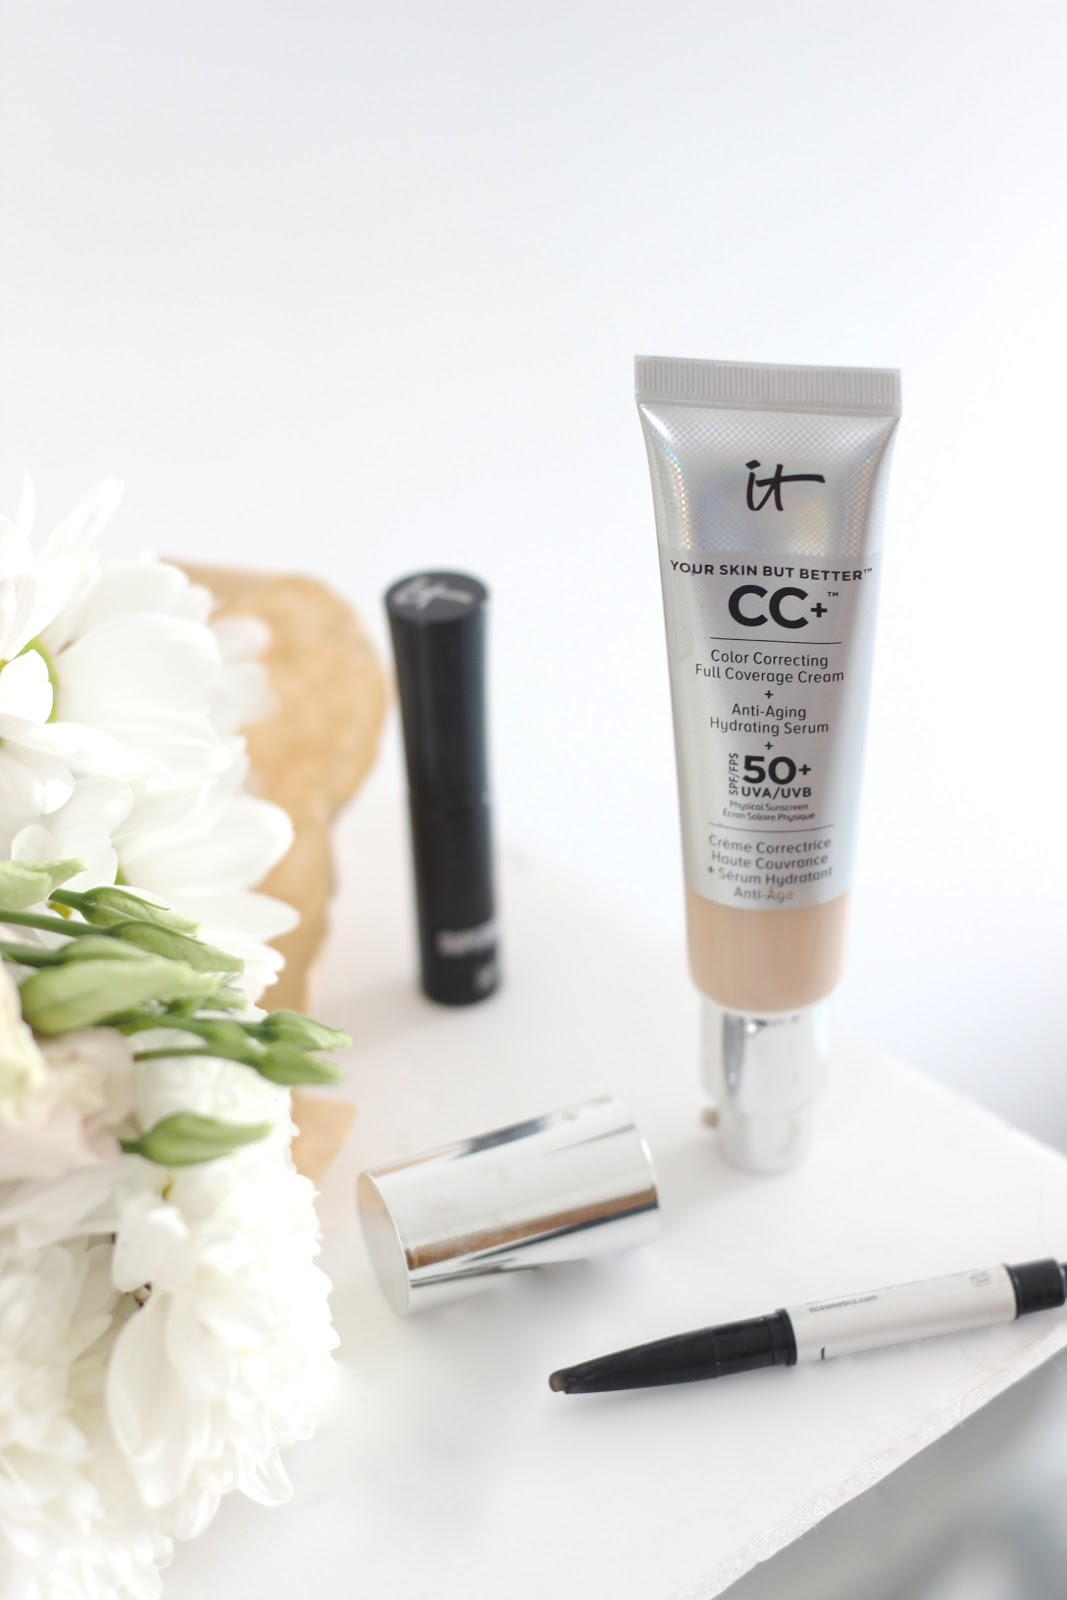 IT Cosmetics CC Cream: Worth The Hype?